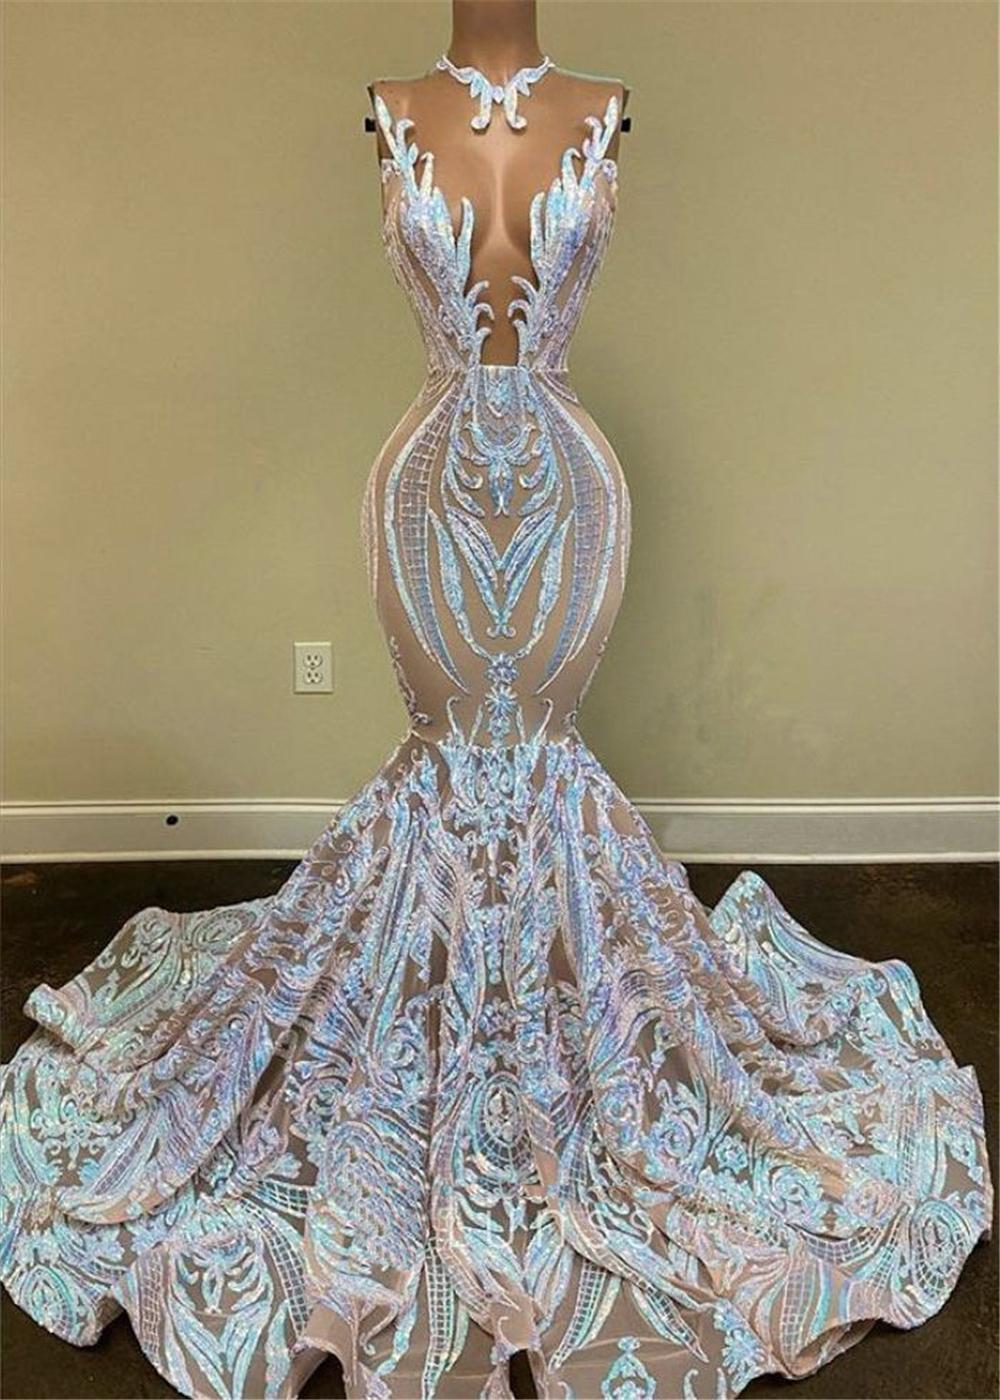 Black Girls Sparkly Sequin Long Prom Dresses 2021 real image Sexy V Neck Mermaid African Women Gala Evening Party Gowns